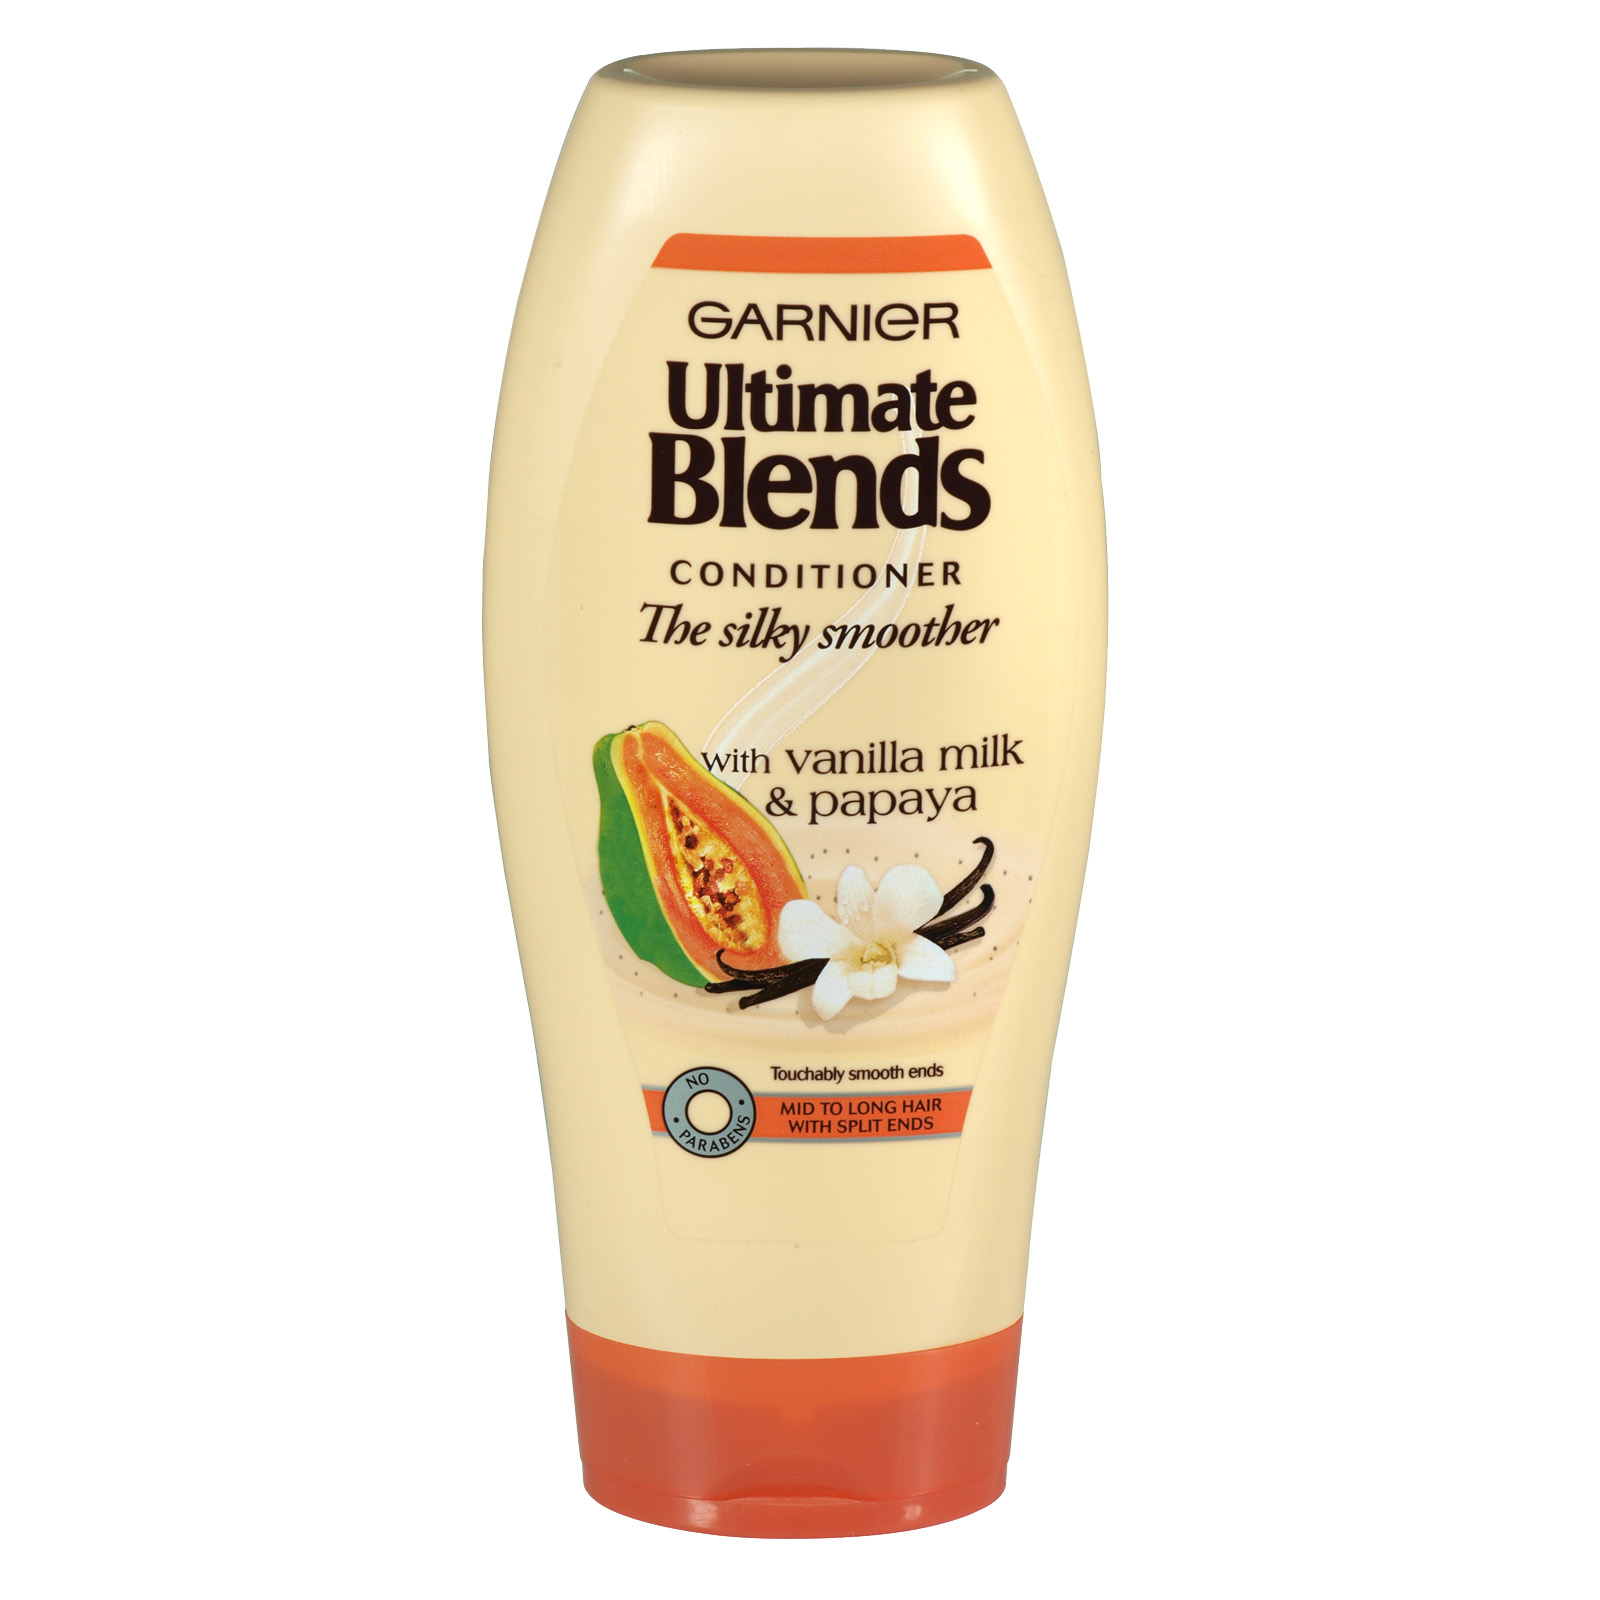 GARNIER ULTIMATE BLENDS 400ML COND VANILLA+ PAPAYA - SILKY SMOOTHER X6